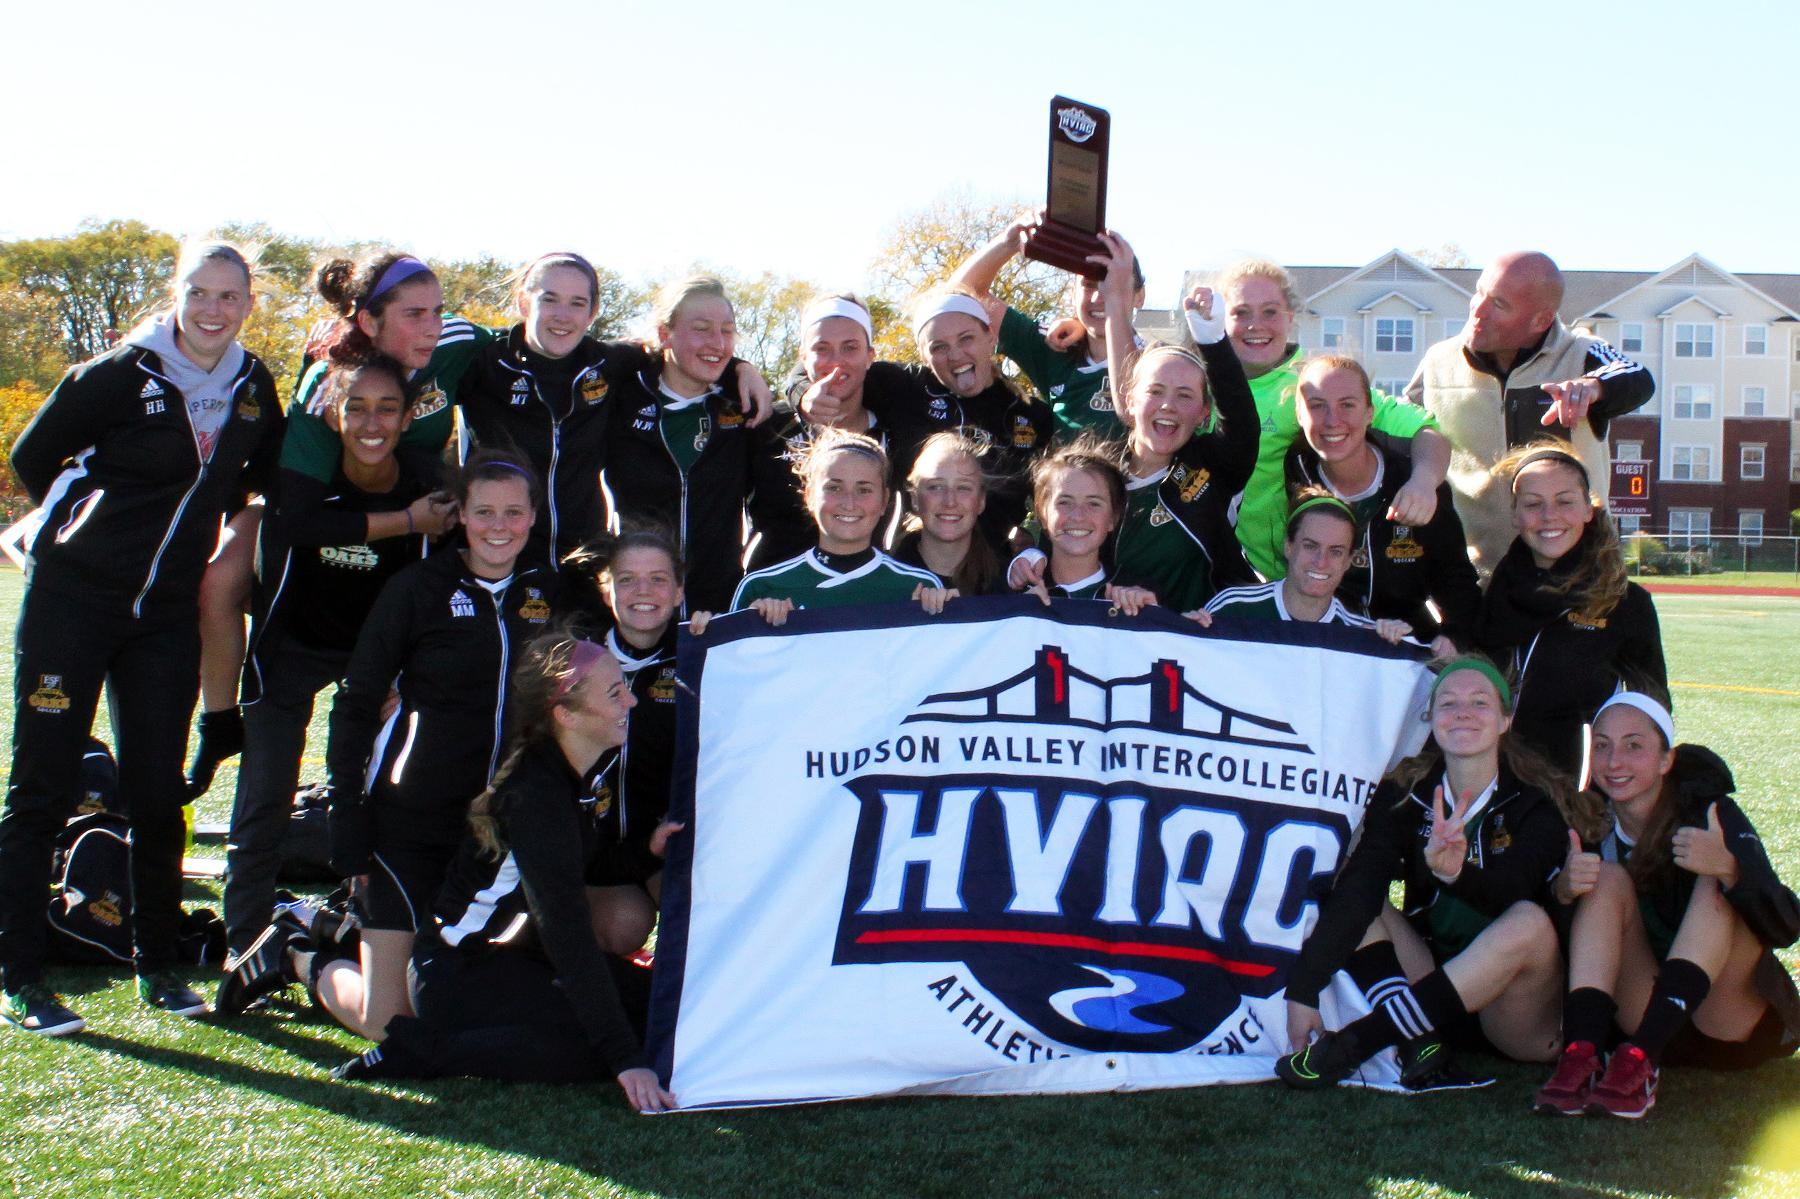 SUNY ESF Wins First Title Halting Albany Pharmacy's Three-Year Reign Atop Women's Soccer